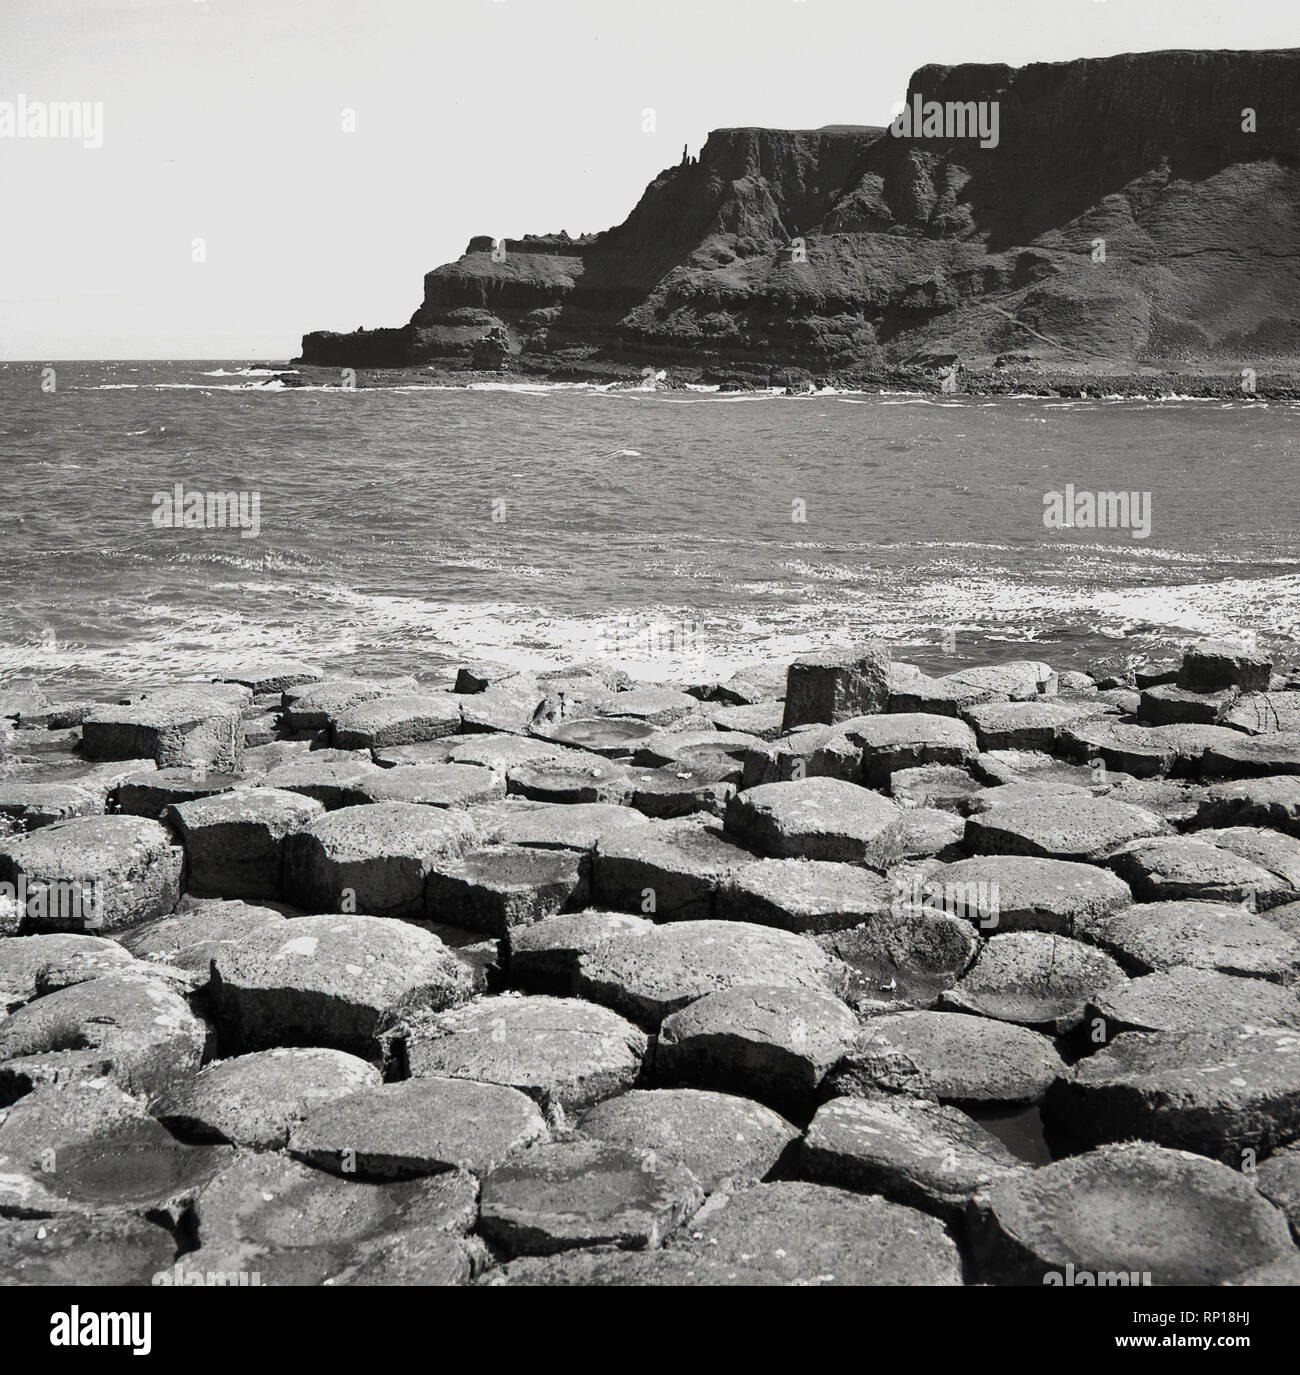 1950s, historical picture showing the ancient interlocking hexagonal basalt columns or stones at the sea's edge at the Giant's Causeway, Co. Antrim, located on the rugged North Atlantic Coast, Northern Ireland, UK. Stock Photo